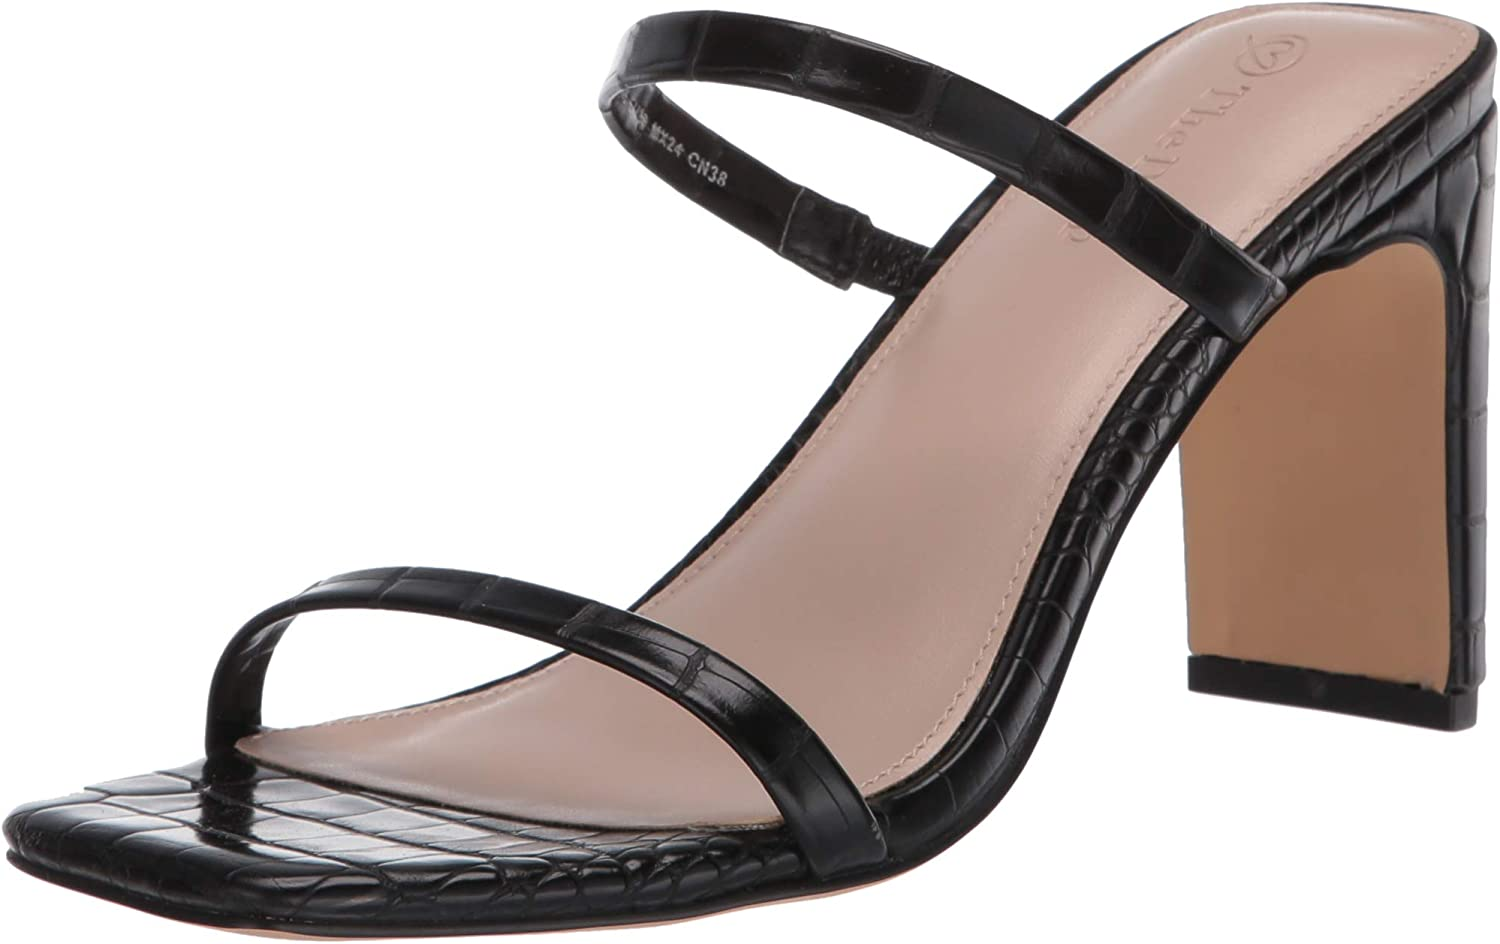 The Drop Women's Avery Square Toe Two Strap High Heeled Sandal